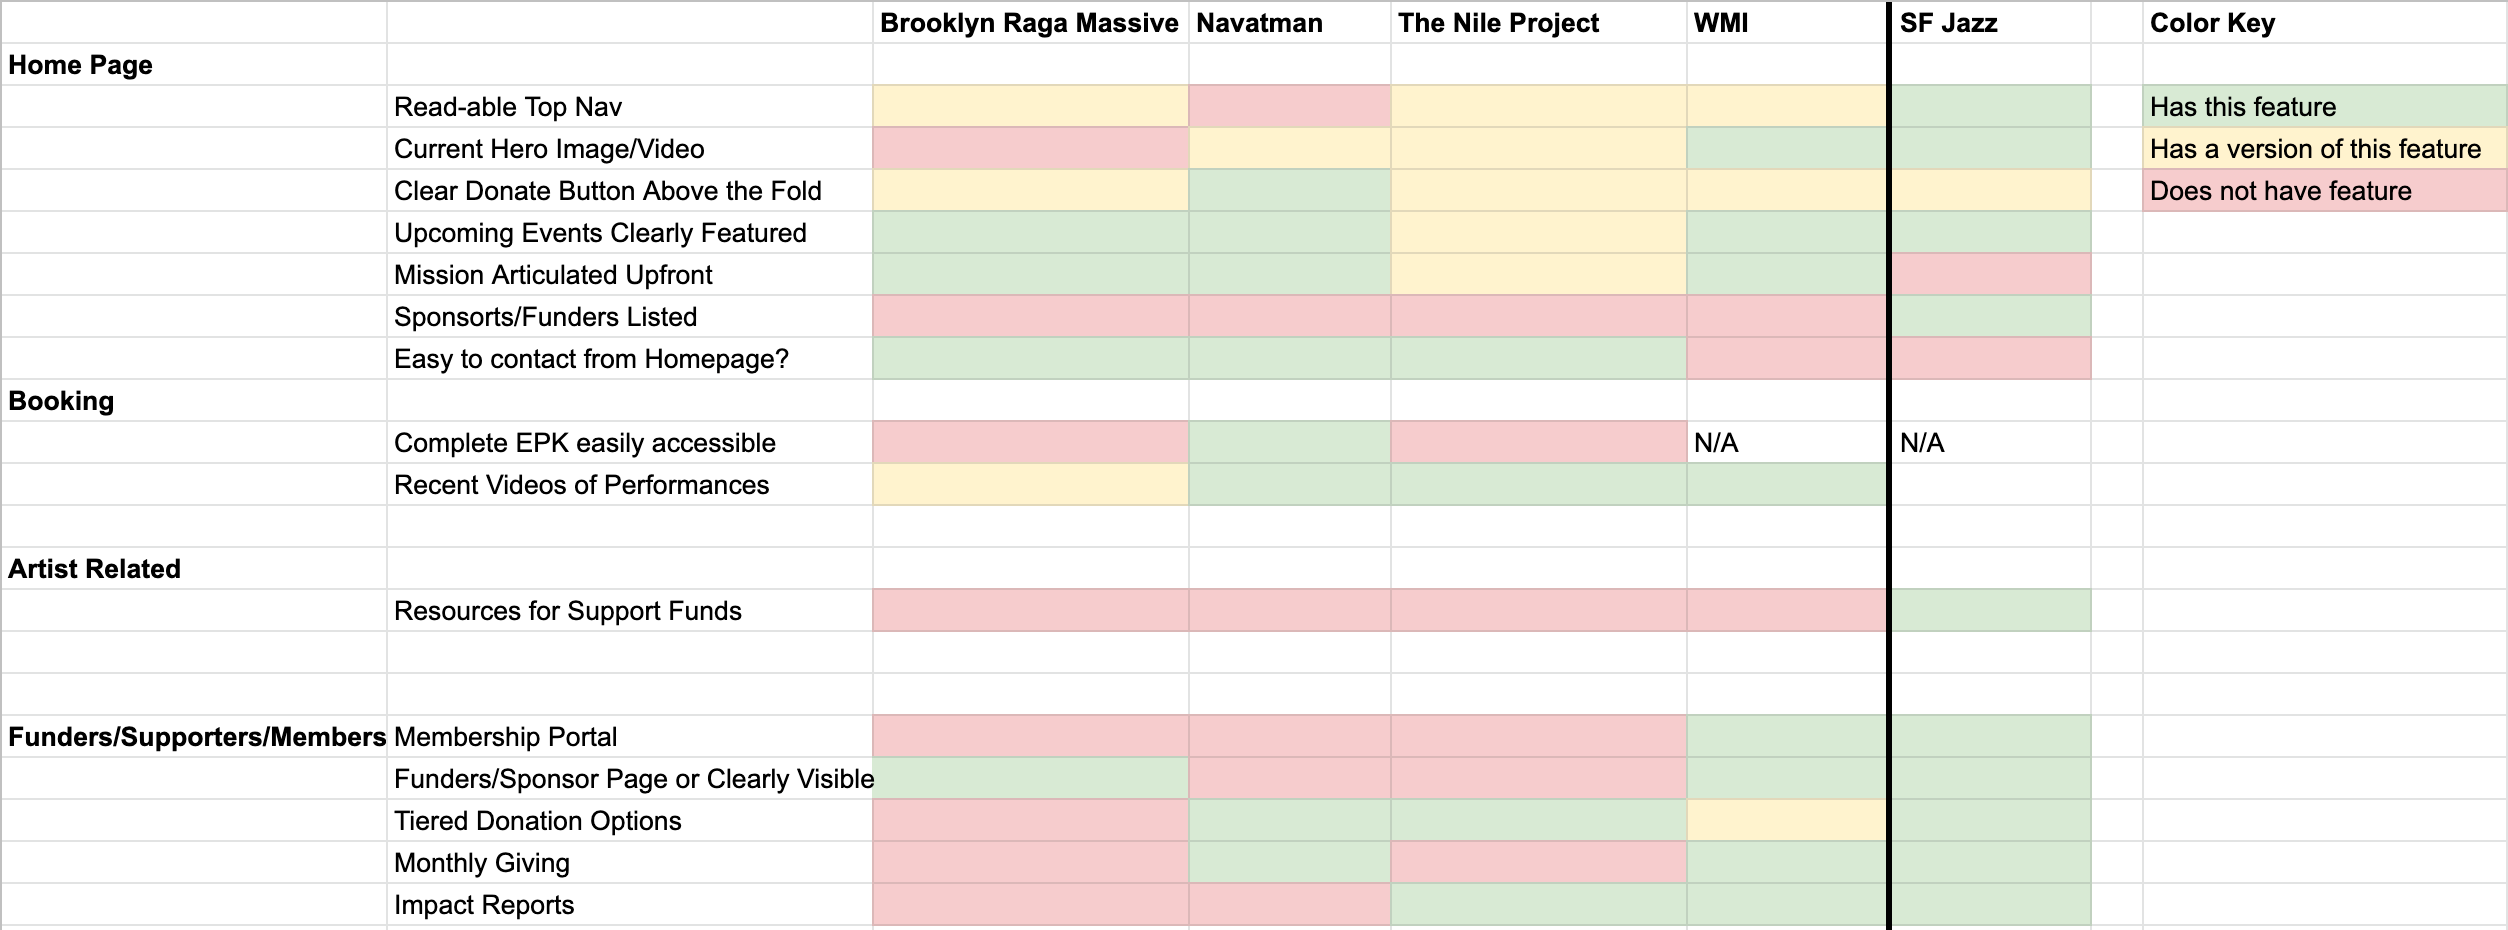 Competitive feature analysis grid with yellow, green, and red squares noting what features other competitor sites have or do not have